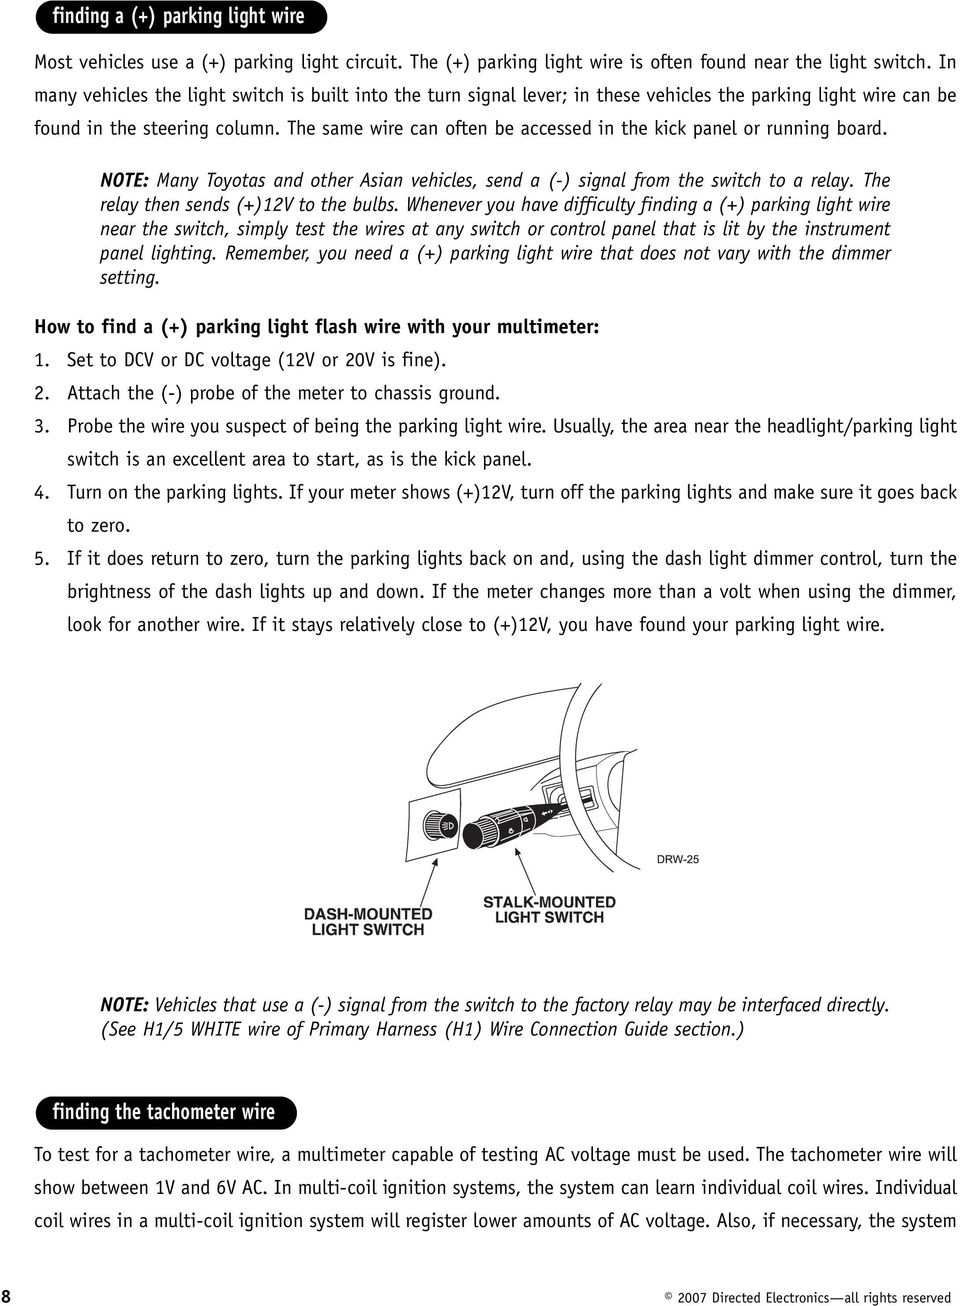 Model Am62 Installation Guide Pdf Dodge Plymouth Neon Instrument Cluster Circuit Board No Tach 95 96 97 The Same Wire Can Often Be Accessed In Kick Panel Or Running Note